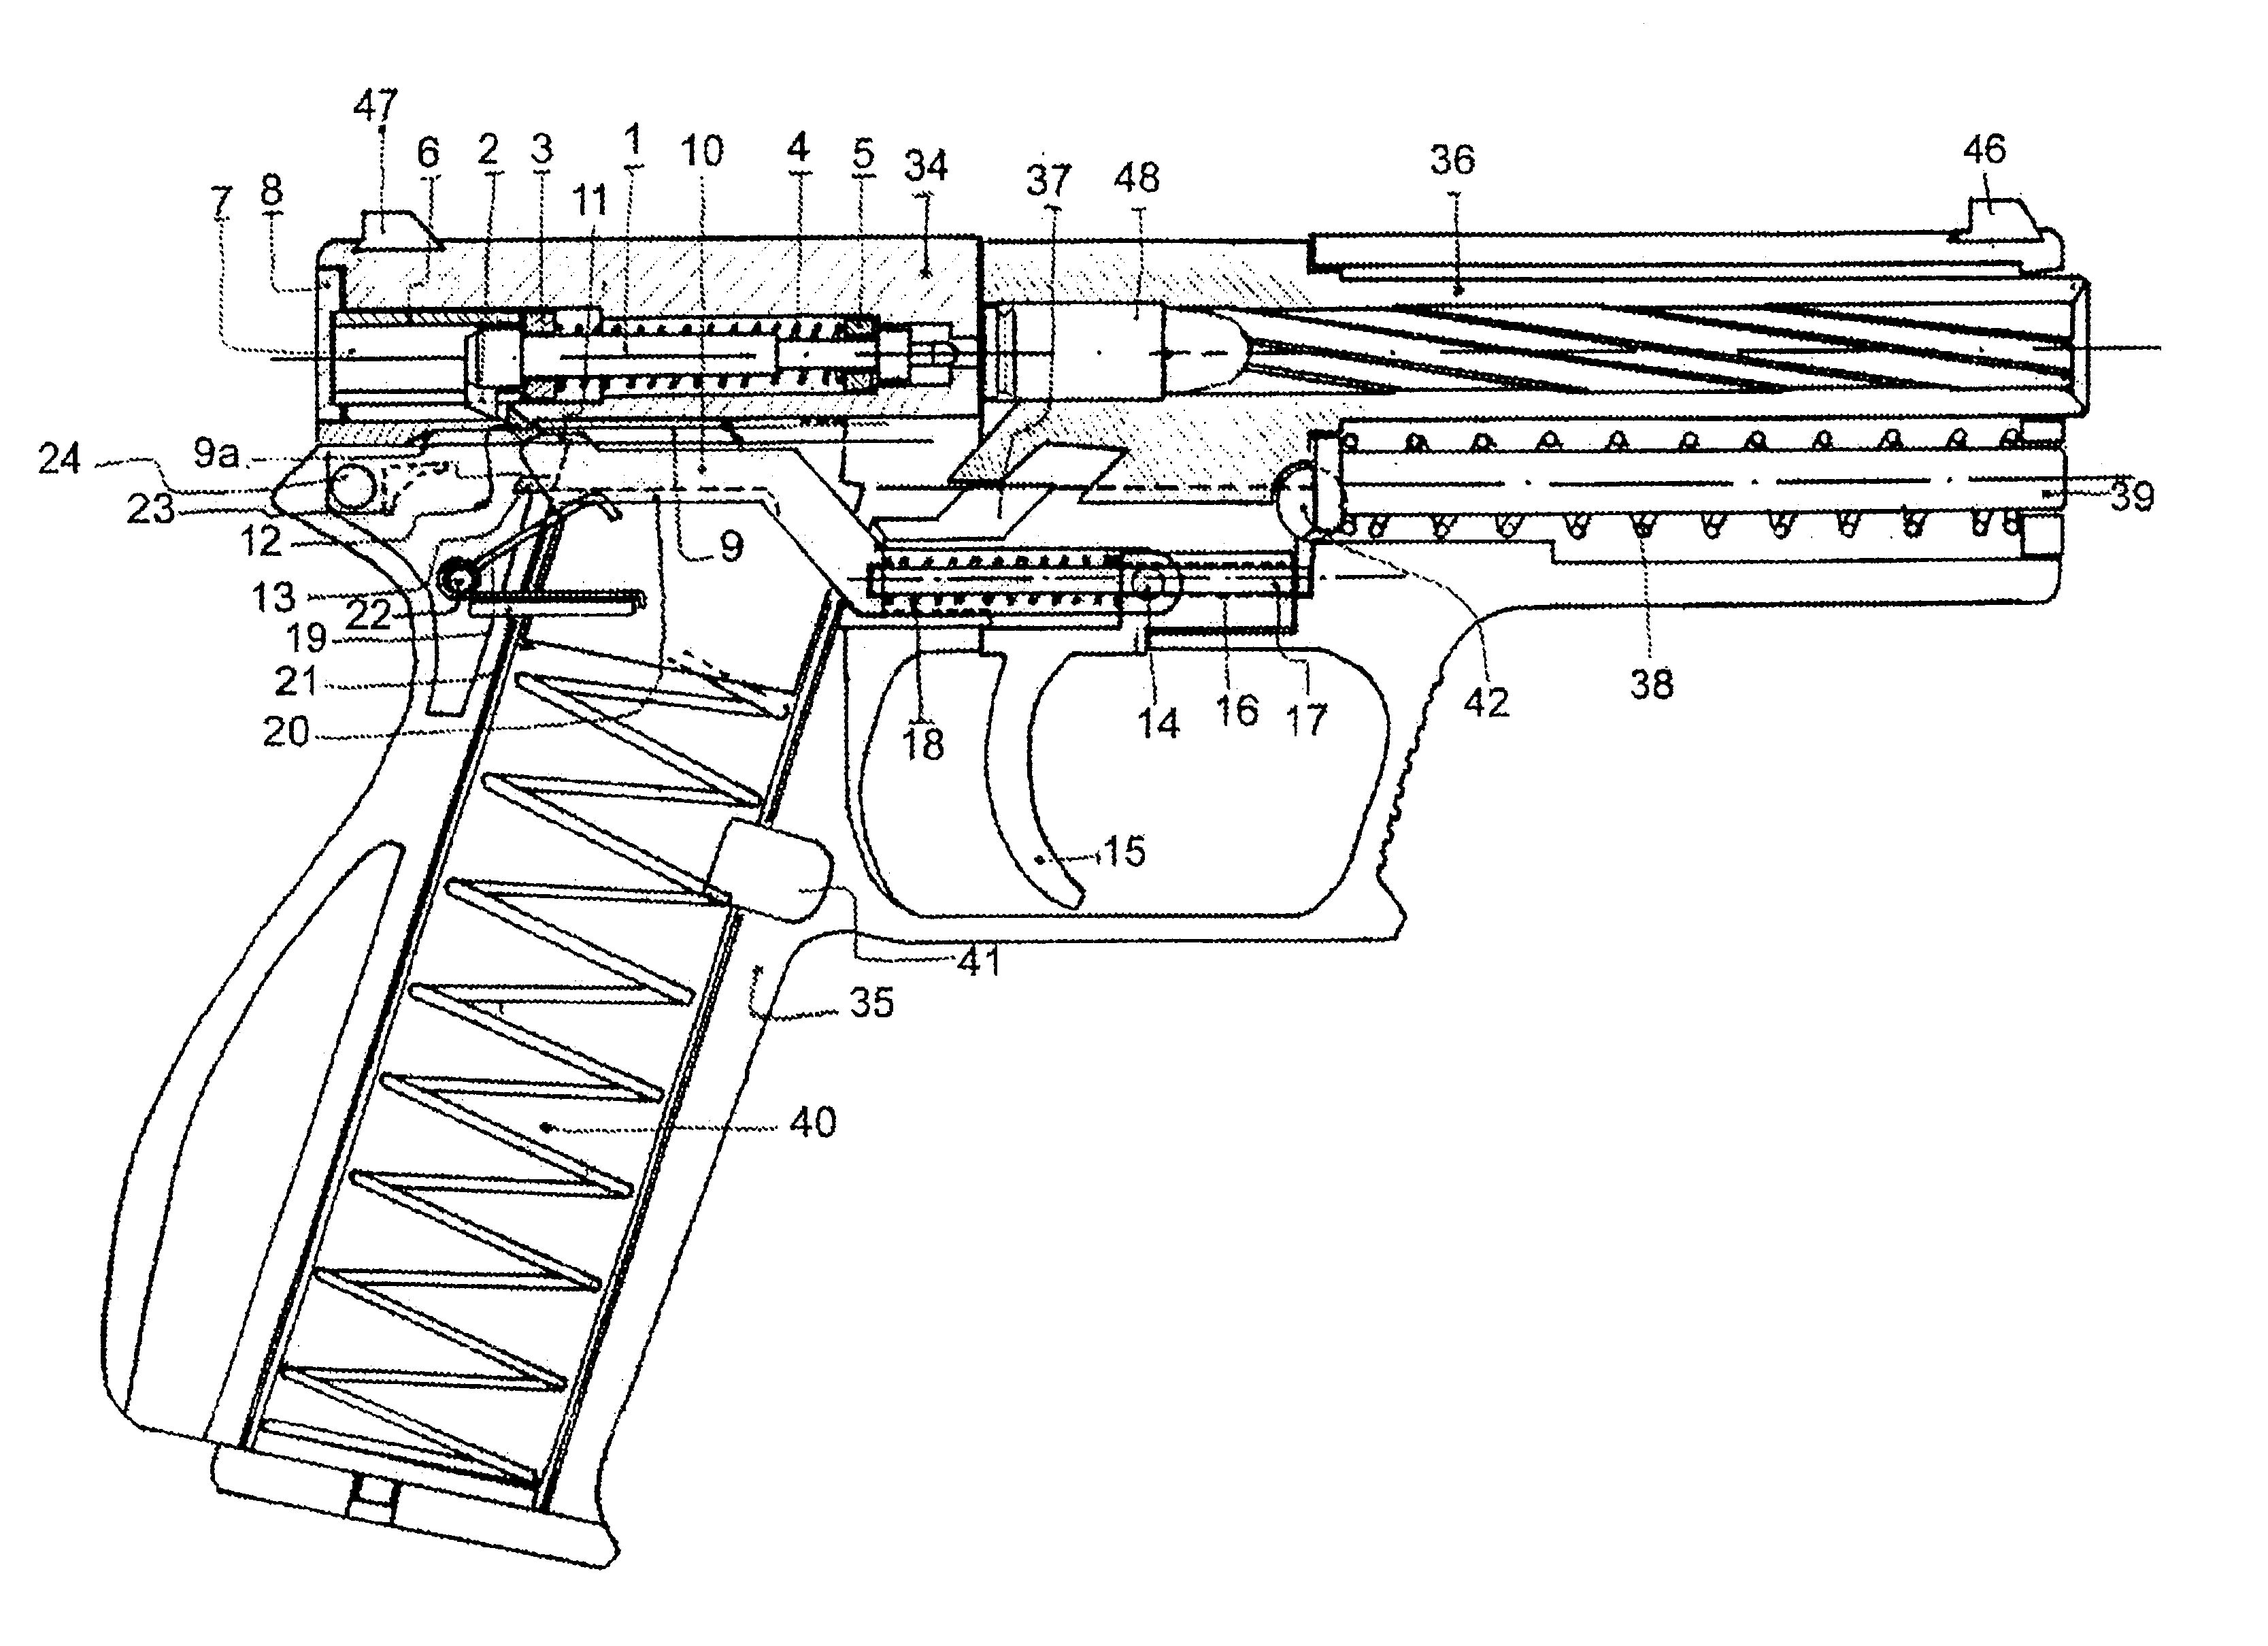 striker trigger mechanism for automatic and semi automatic firearms [ 3334 x 2419 Pixel ]